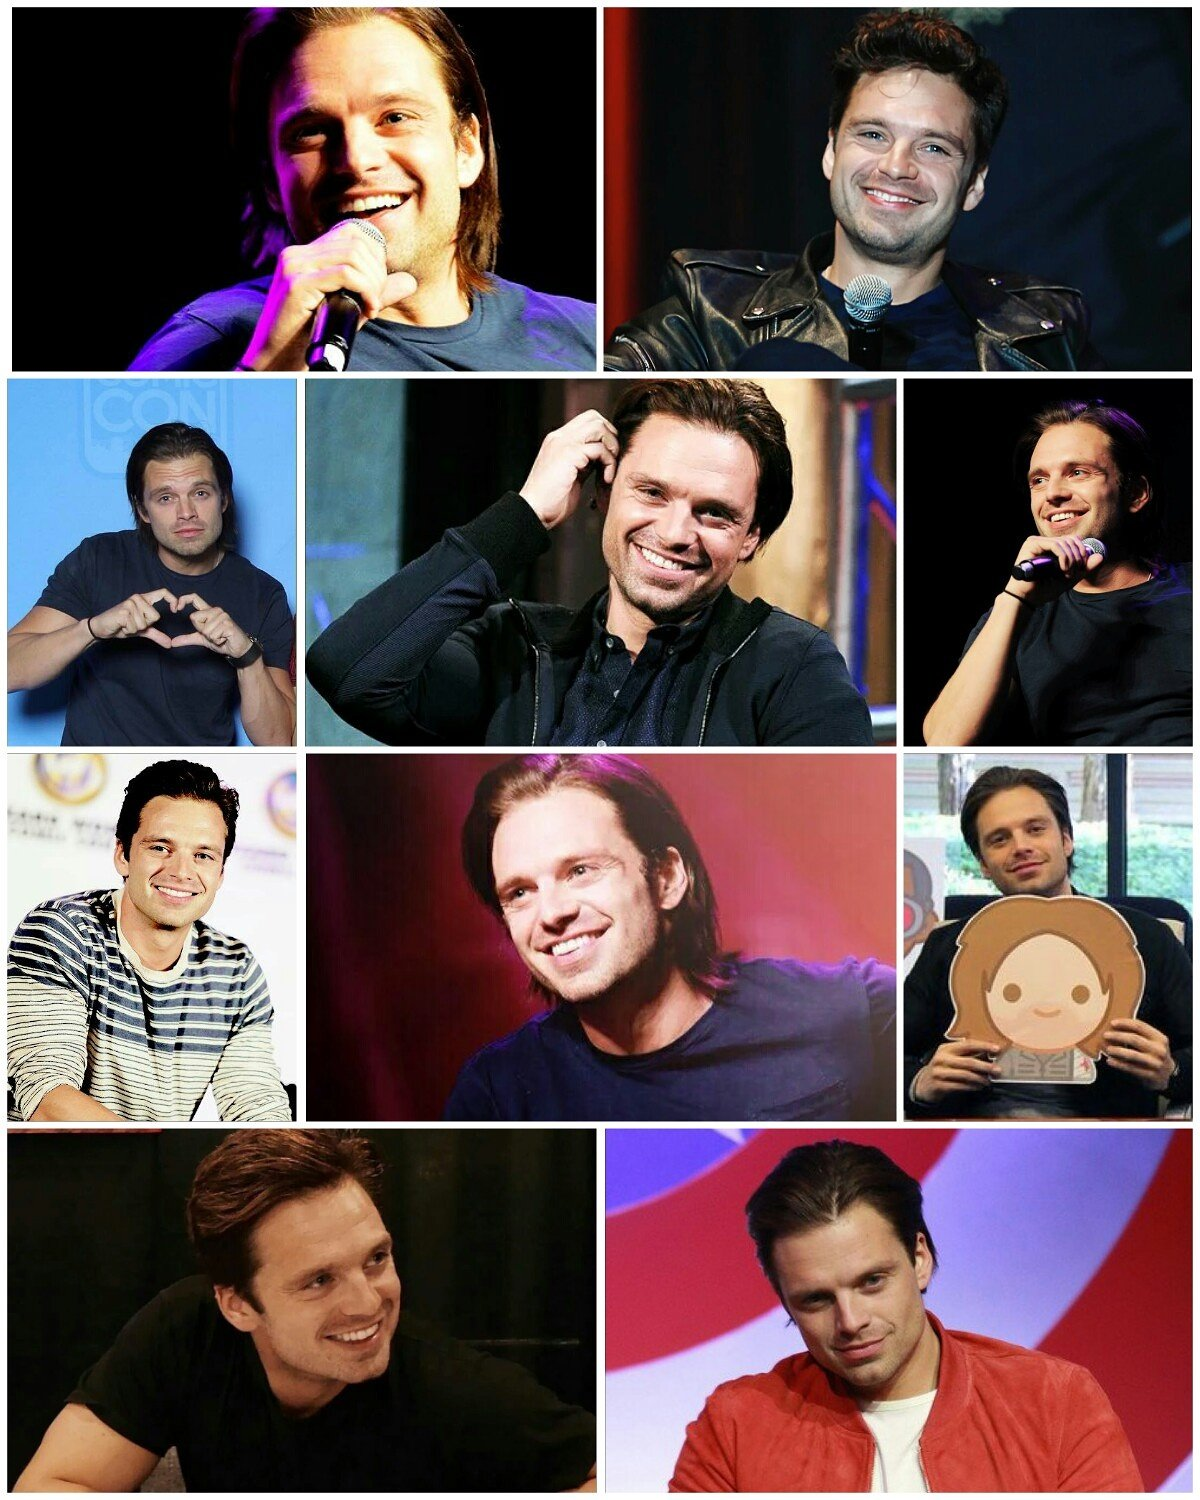 HAPPY BIRTHDAY TO THE AMAZING HUMAN BEING THAT IS SEBASTIAN STAN...